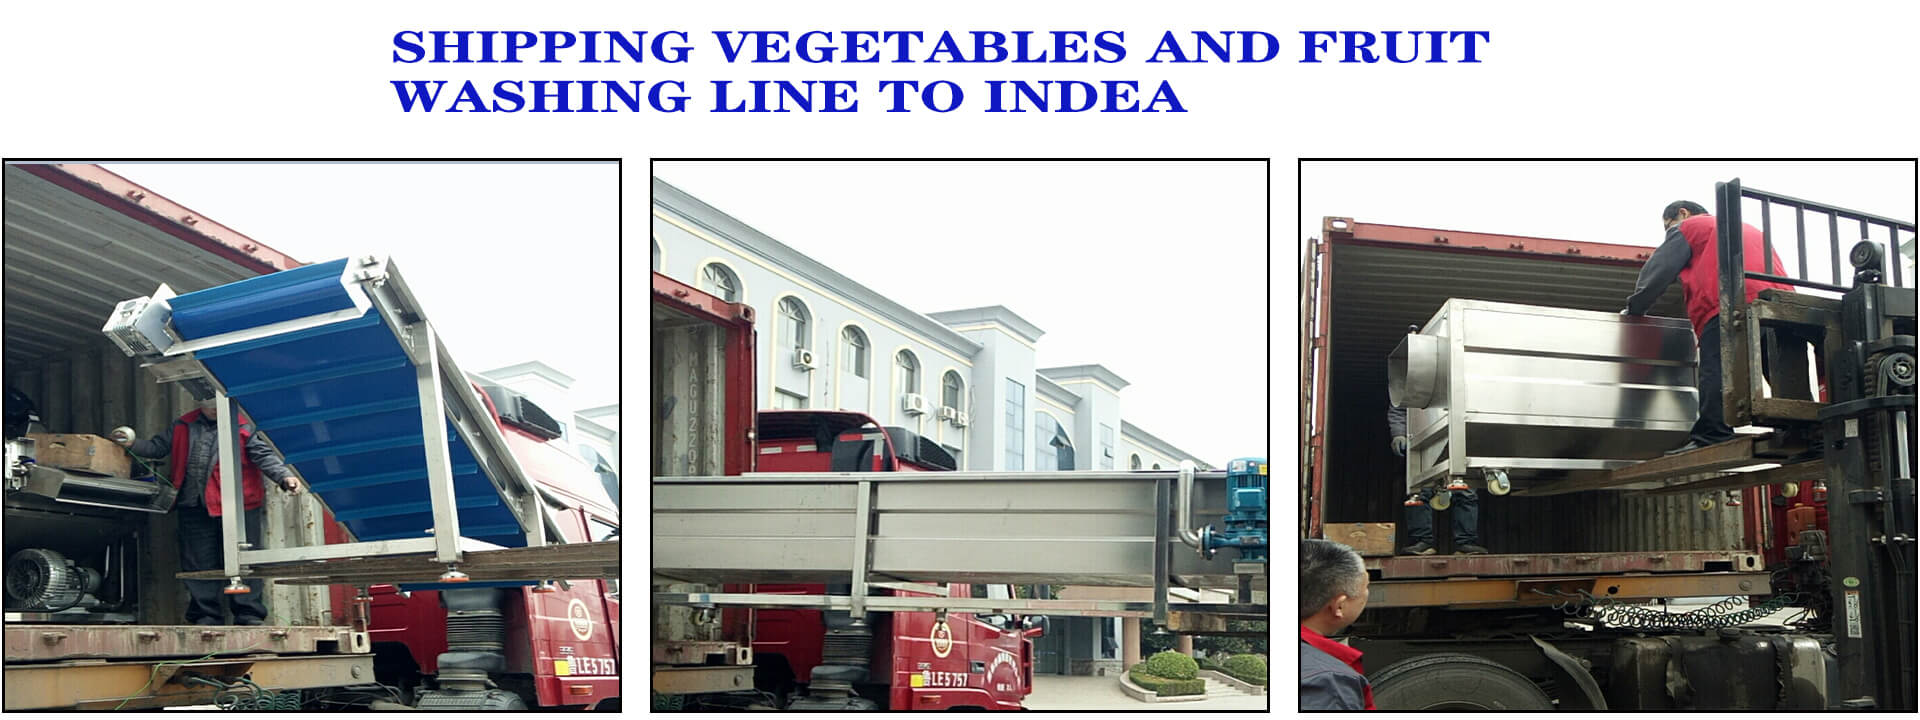 shipping vegetables and fruit washing production line to India